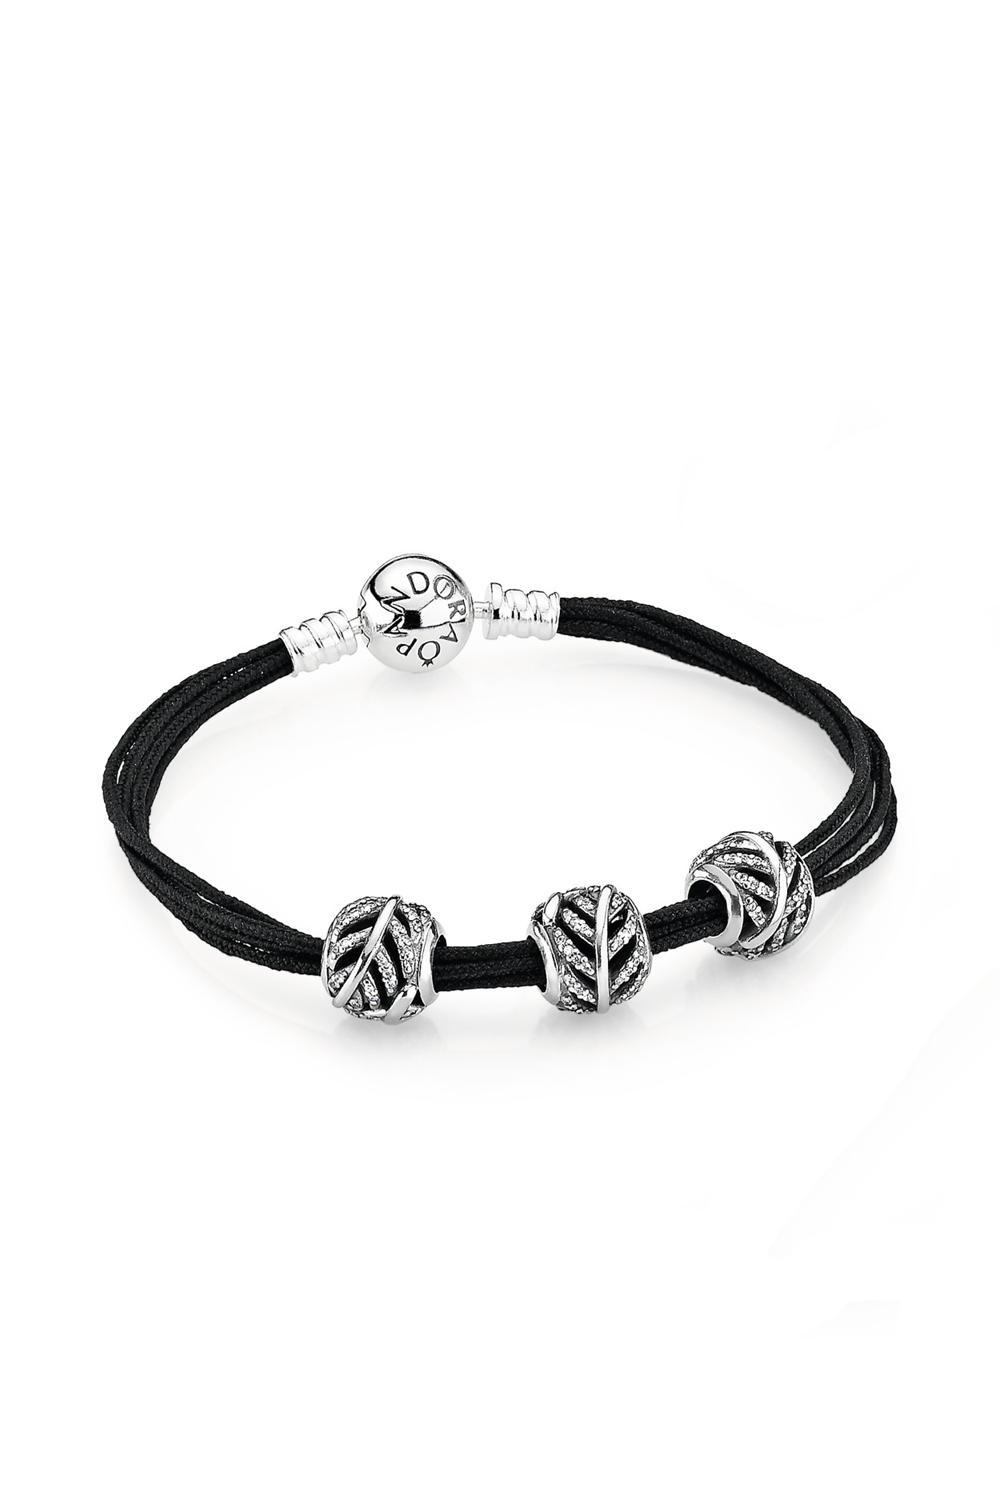 e1d1f0045db16f Simple bracelet styling with three shimmering feather charms in sterling  silver. #PANDORA